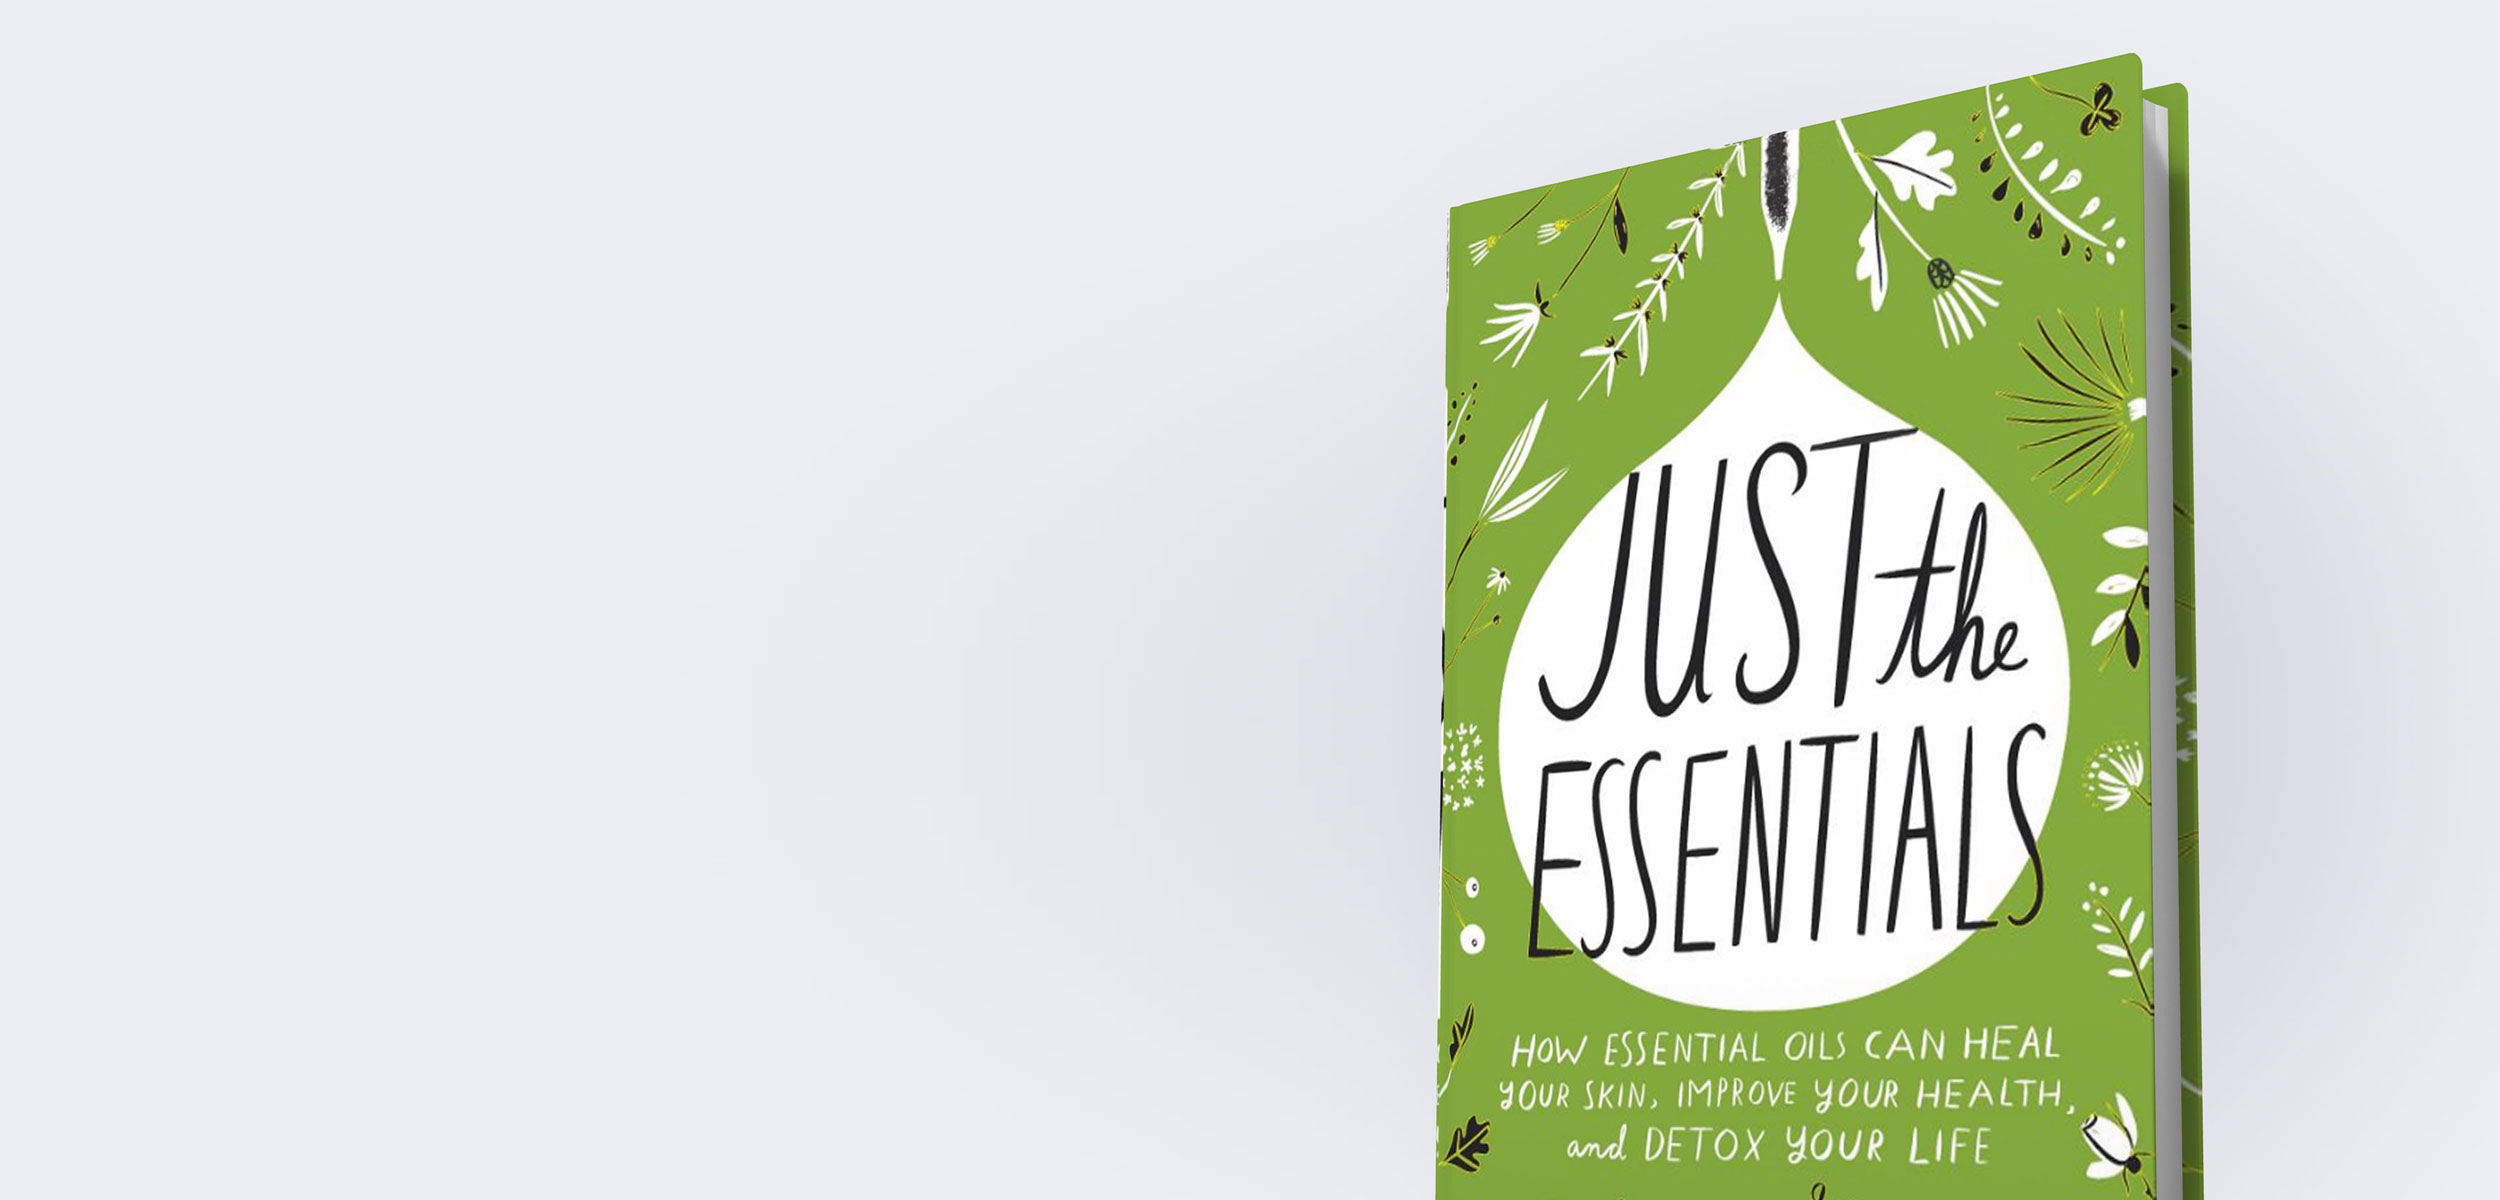 Just the Essentials, by Adina Grigore